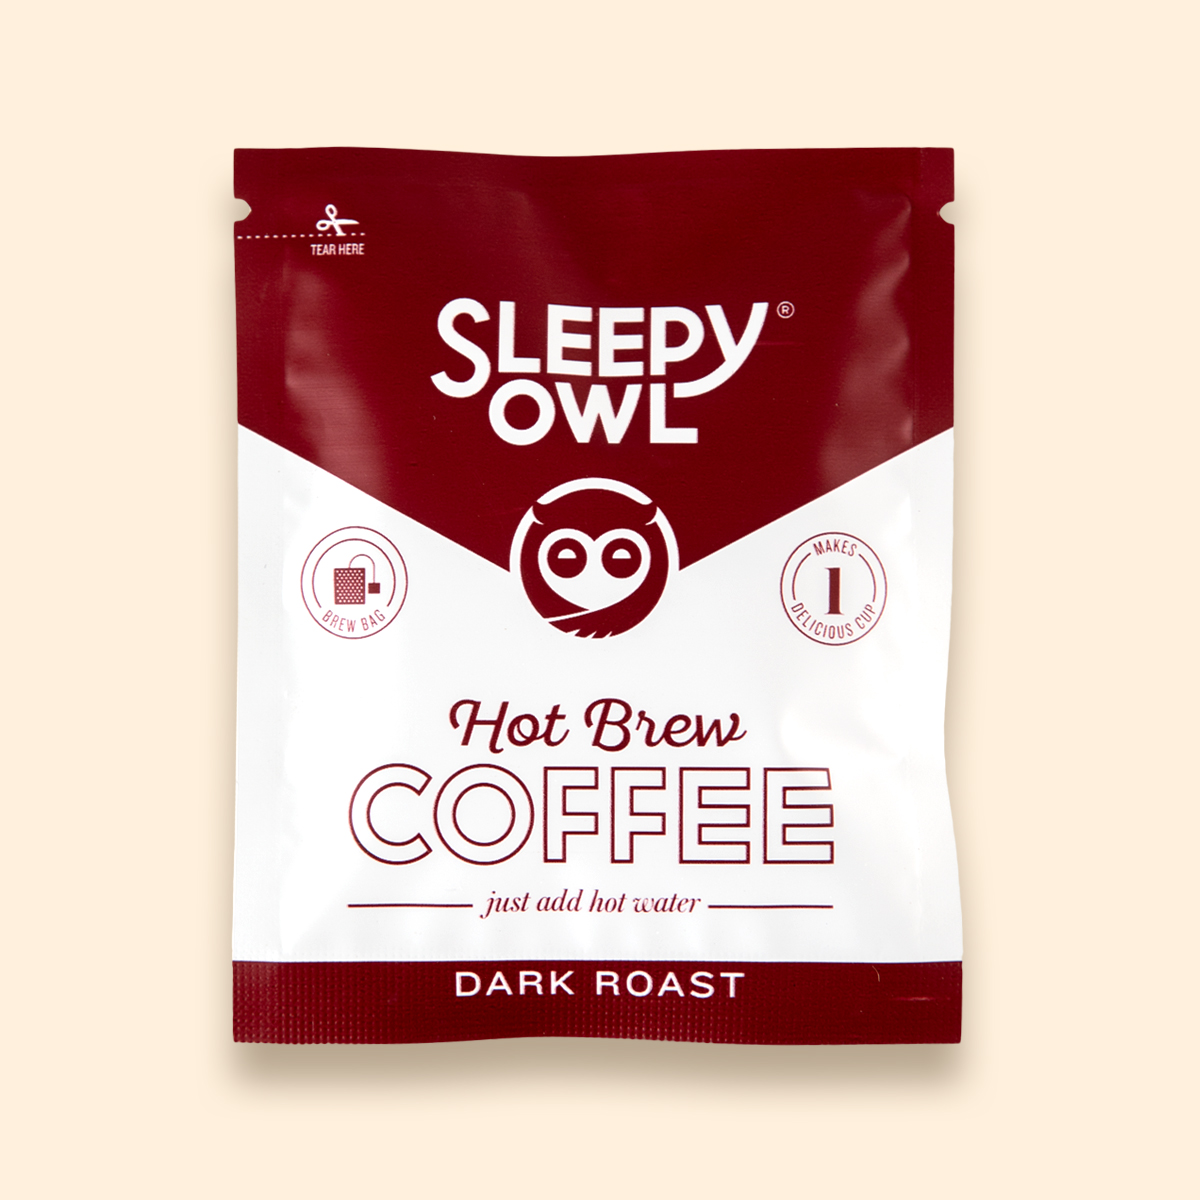 SLEEPY OWL Brings To the Indian Consumer 100% Biodegradable, Equipment Free, On the Go Coffee